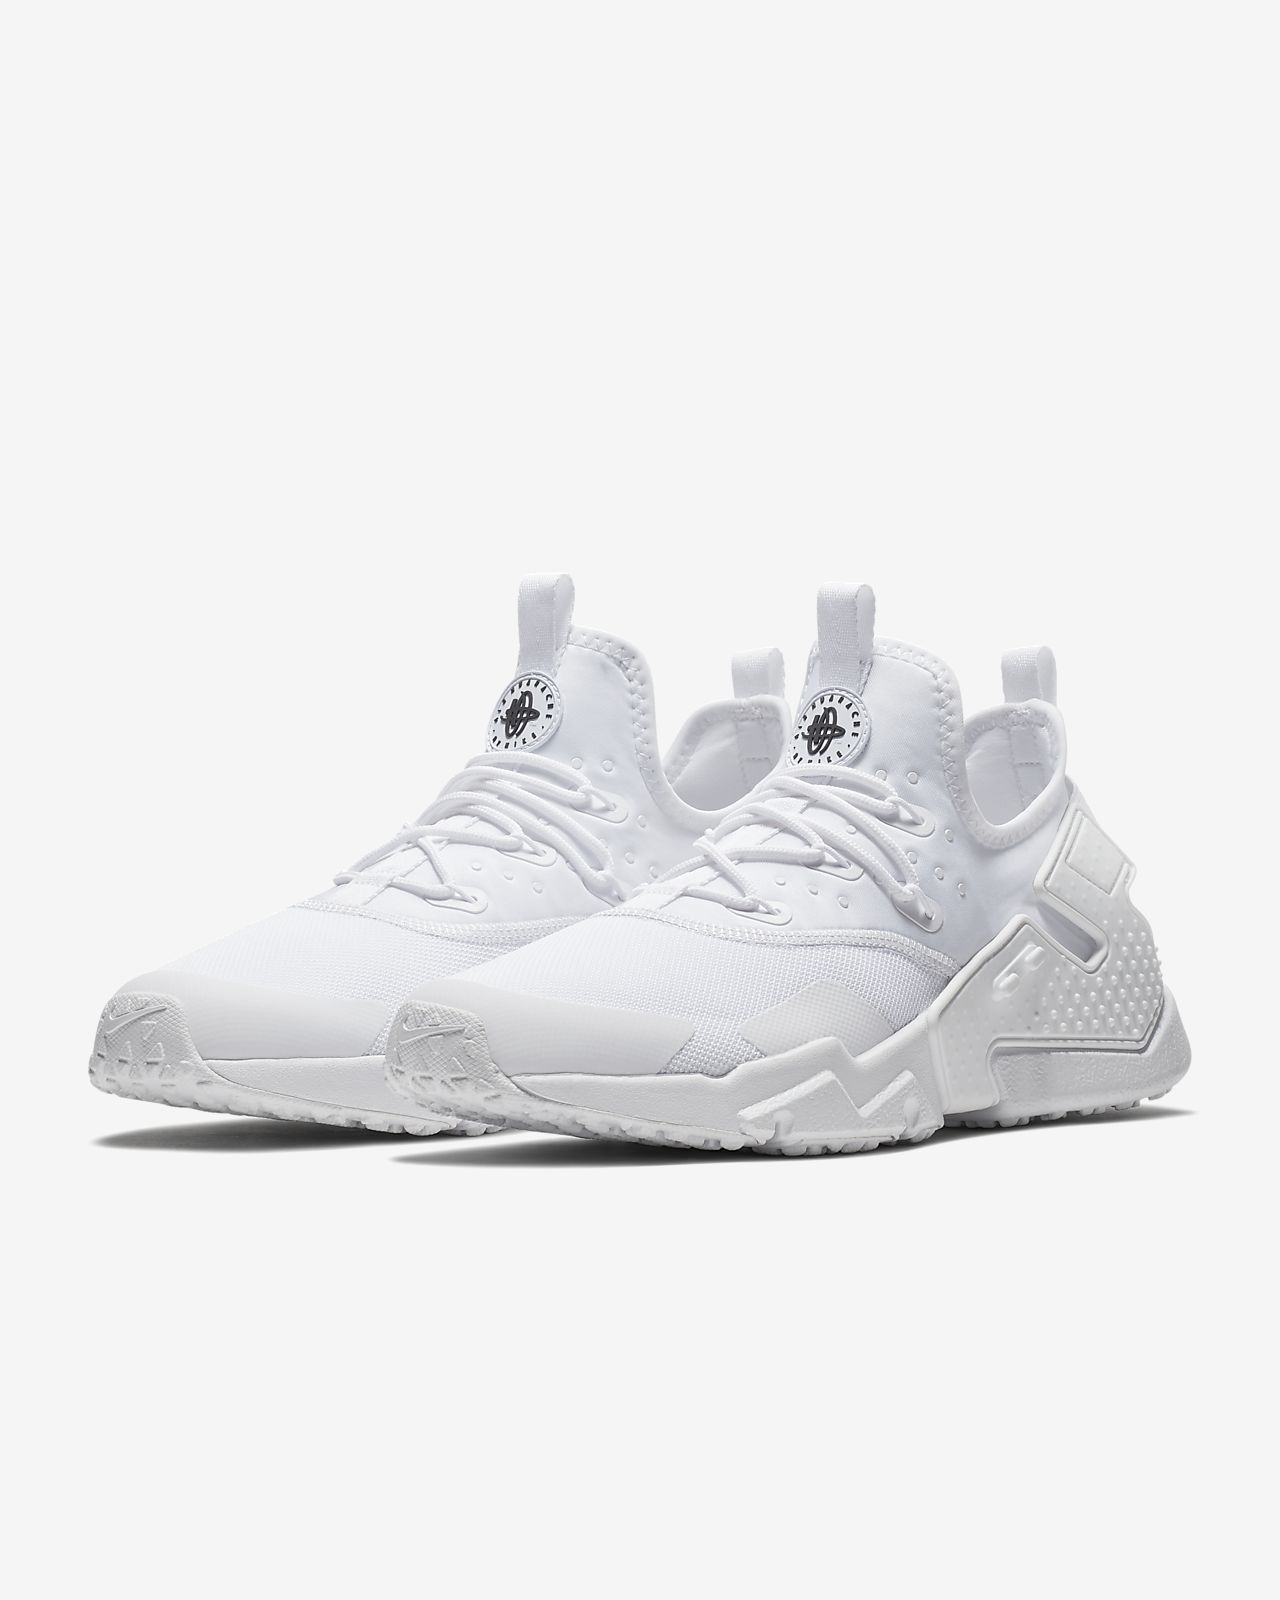 5157c8d837bf82 Low Resolution Nike Air Huarache Drift Men s Shoe Nike Air Huarache Drift Men s  Shoe